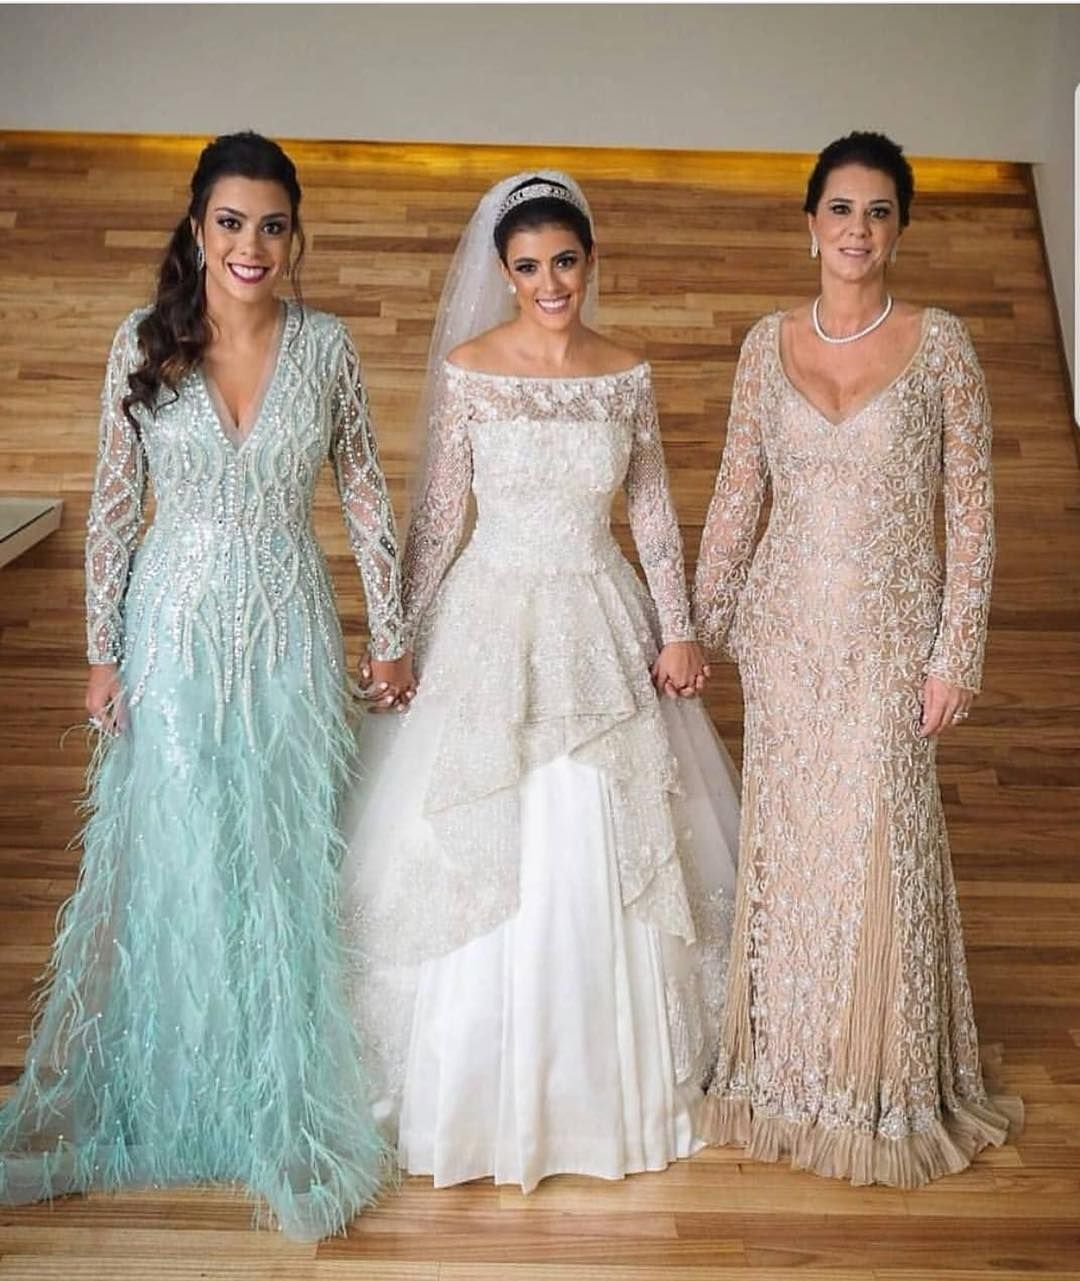 Pin By Hduygu Unlu On مادر و دختر Mother Wedding Dress Mother Of The Bride Dresses Long Mother Of The Bride Gown